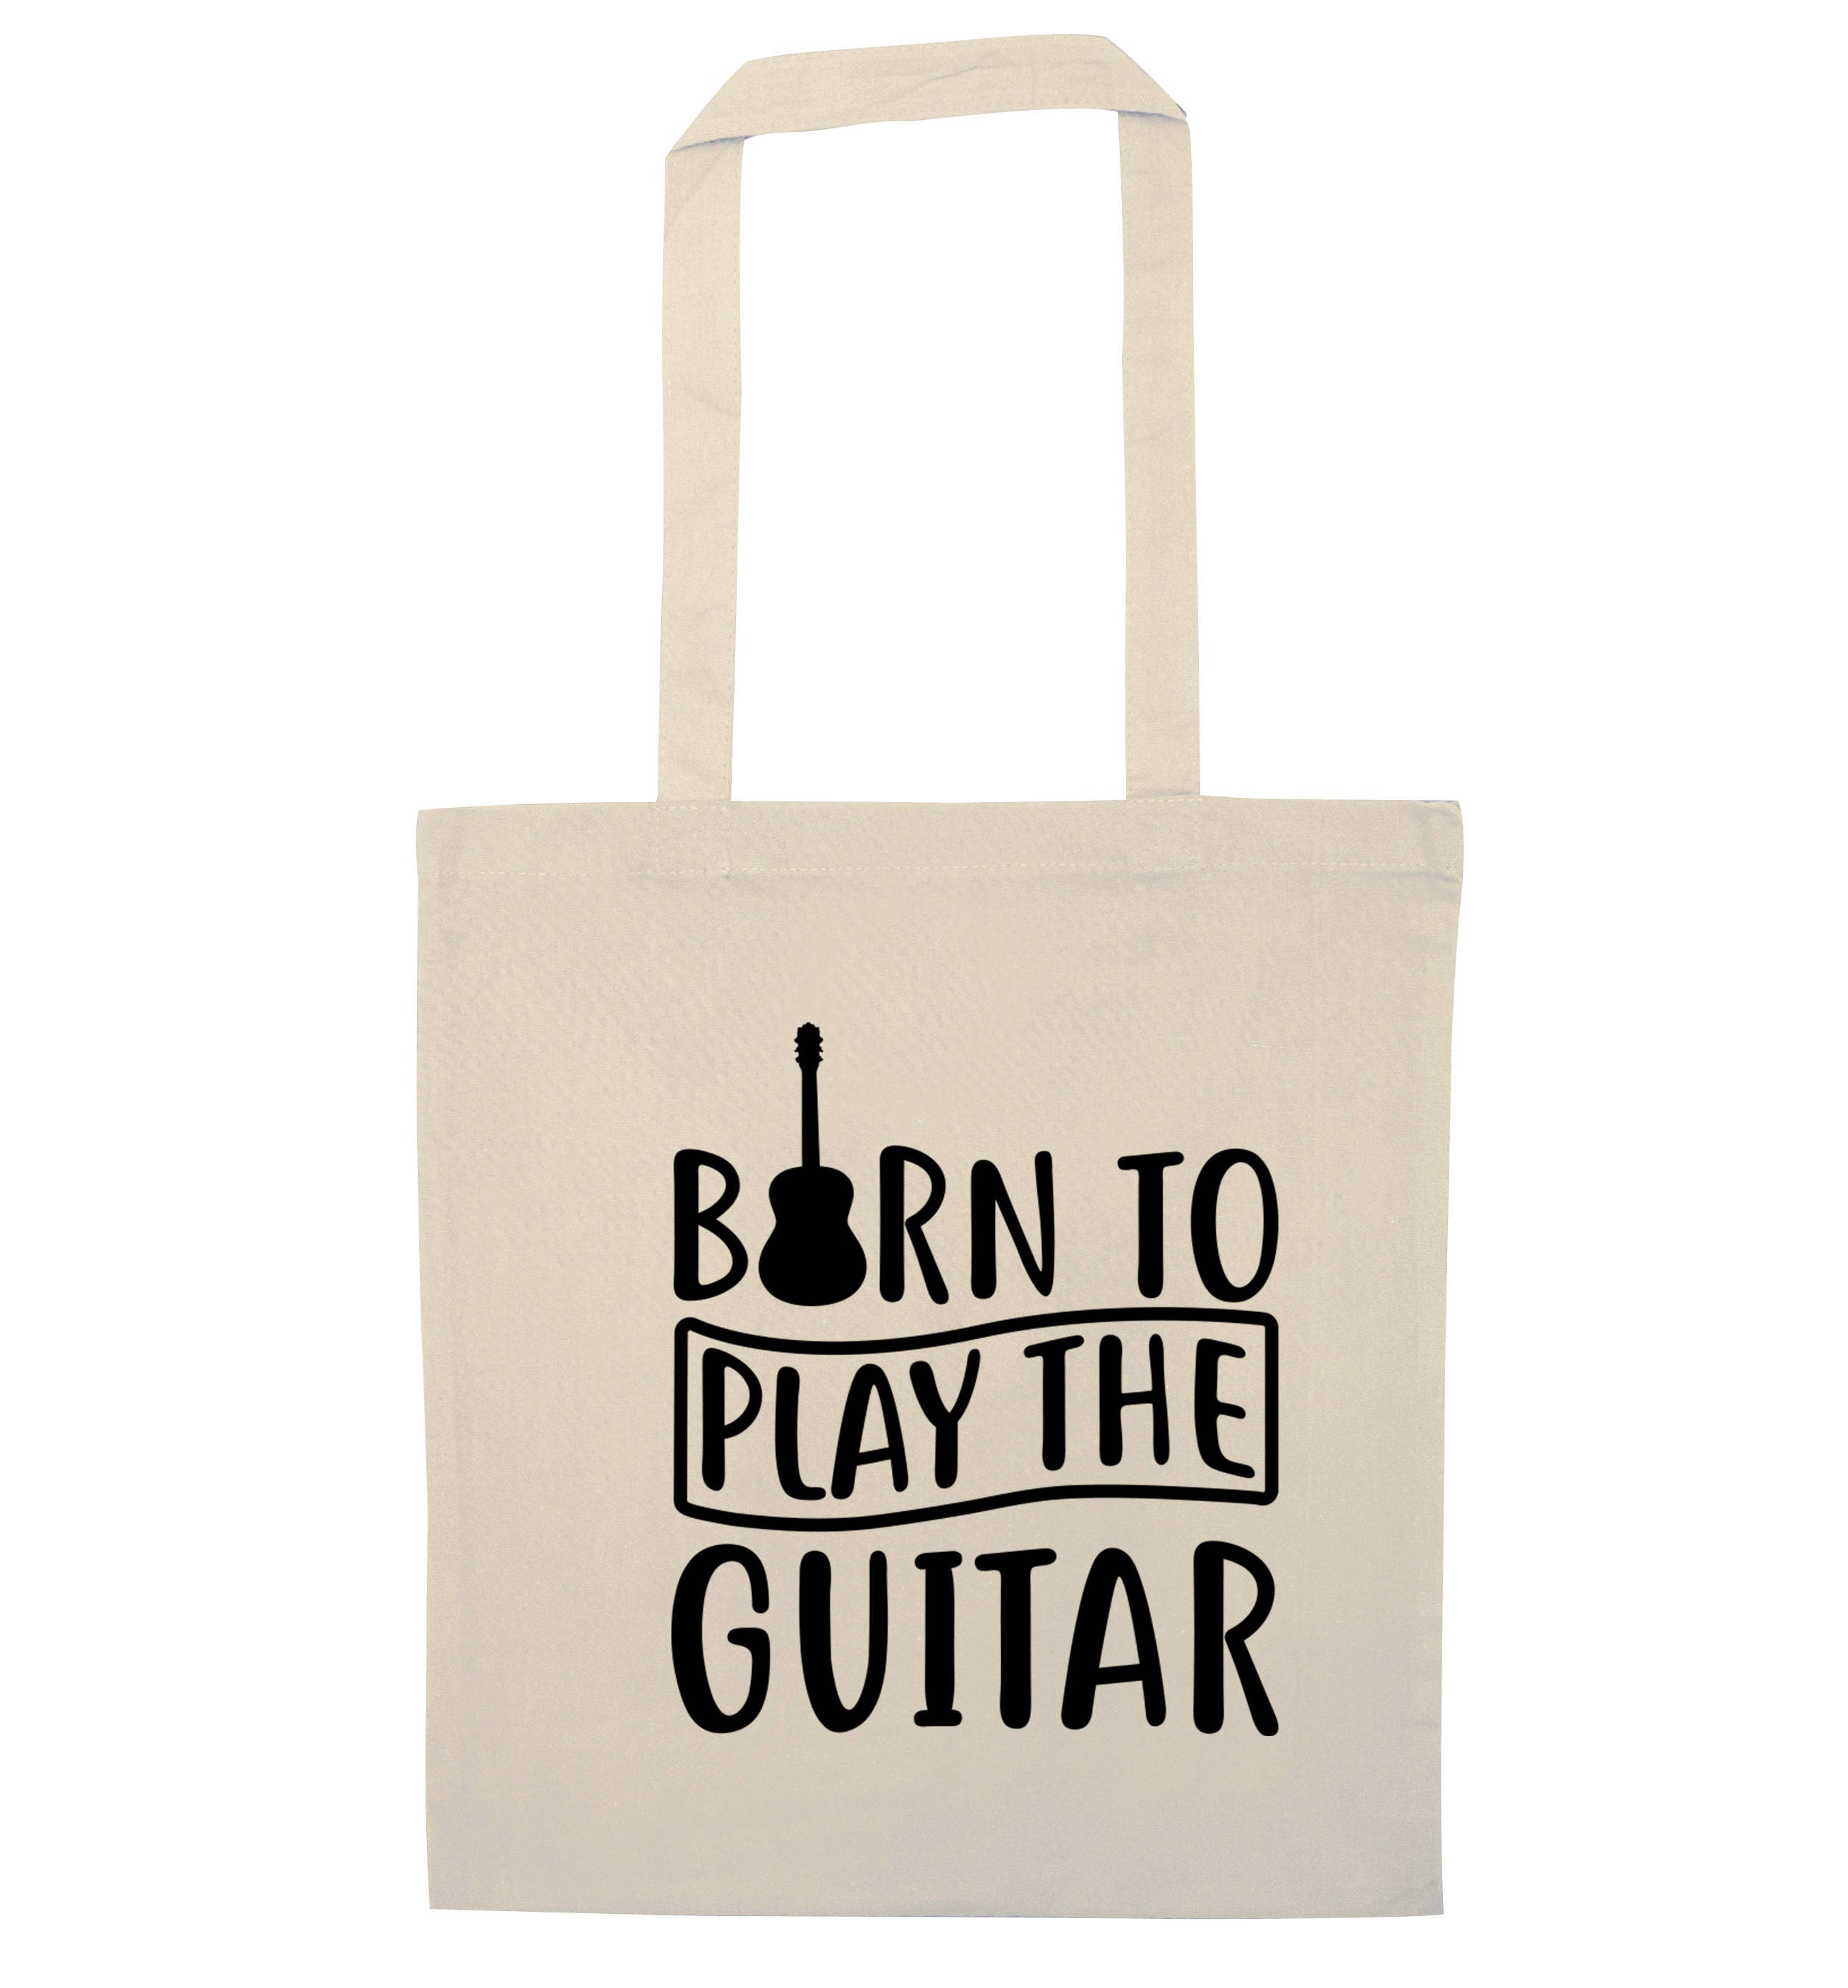 Born to play the guitar tote bag electric bass acoustic instrument play music lyrics song musician funny tumblr instagram hipster 4010